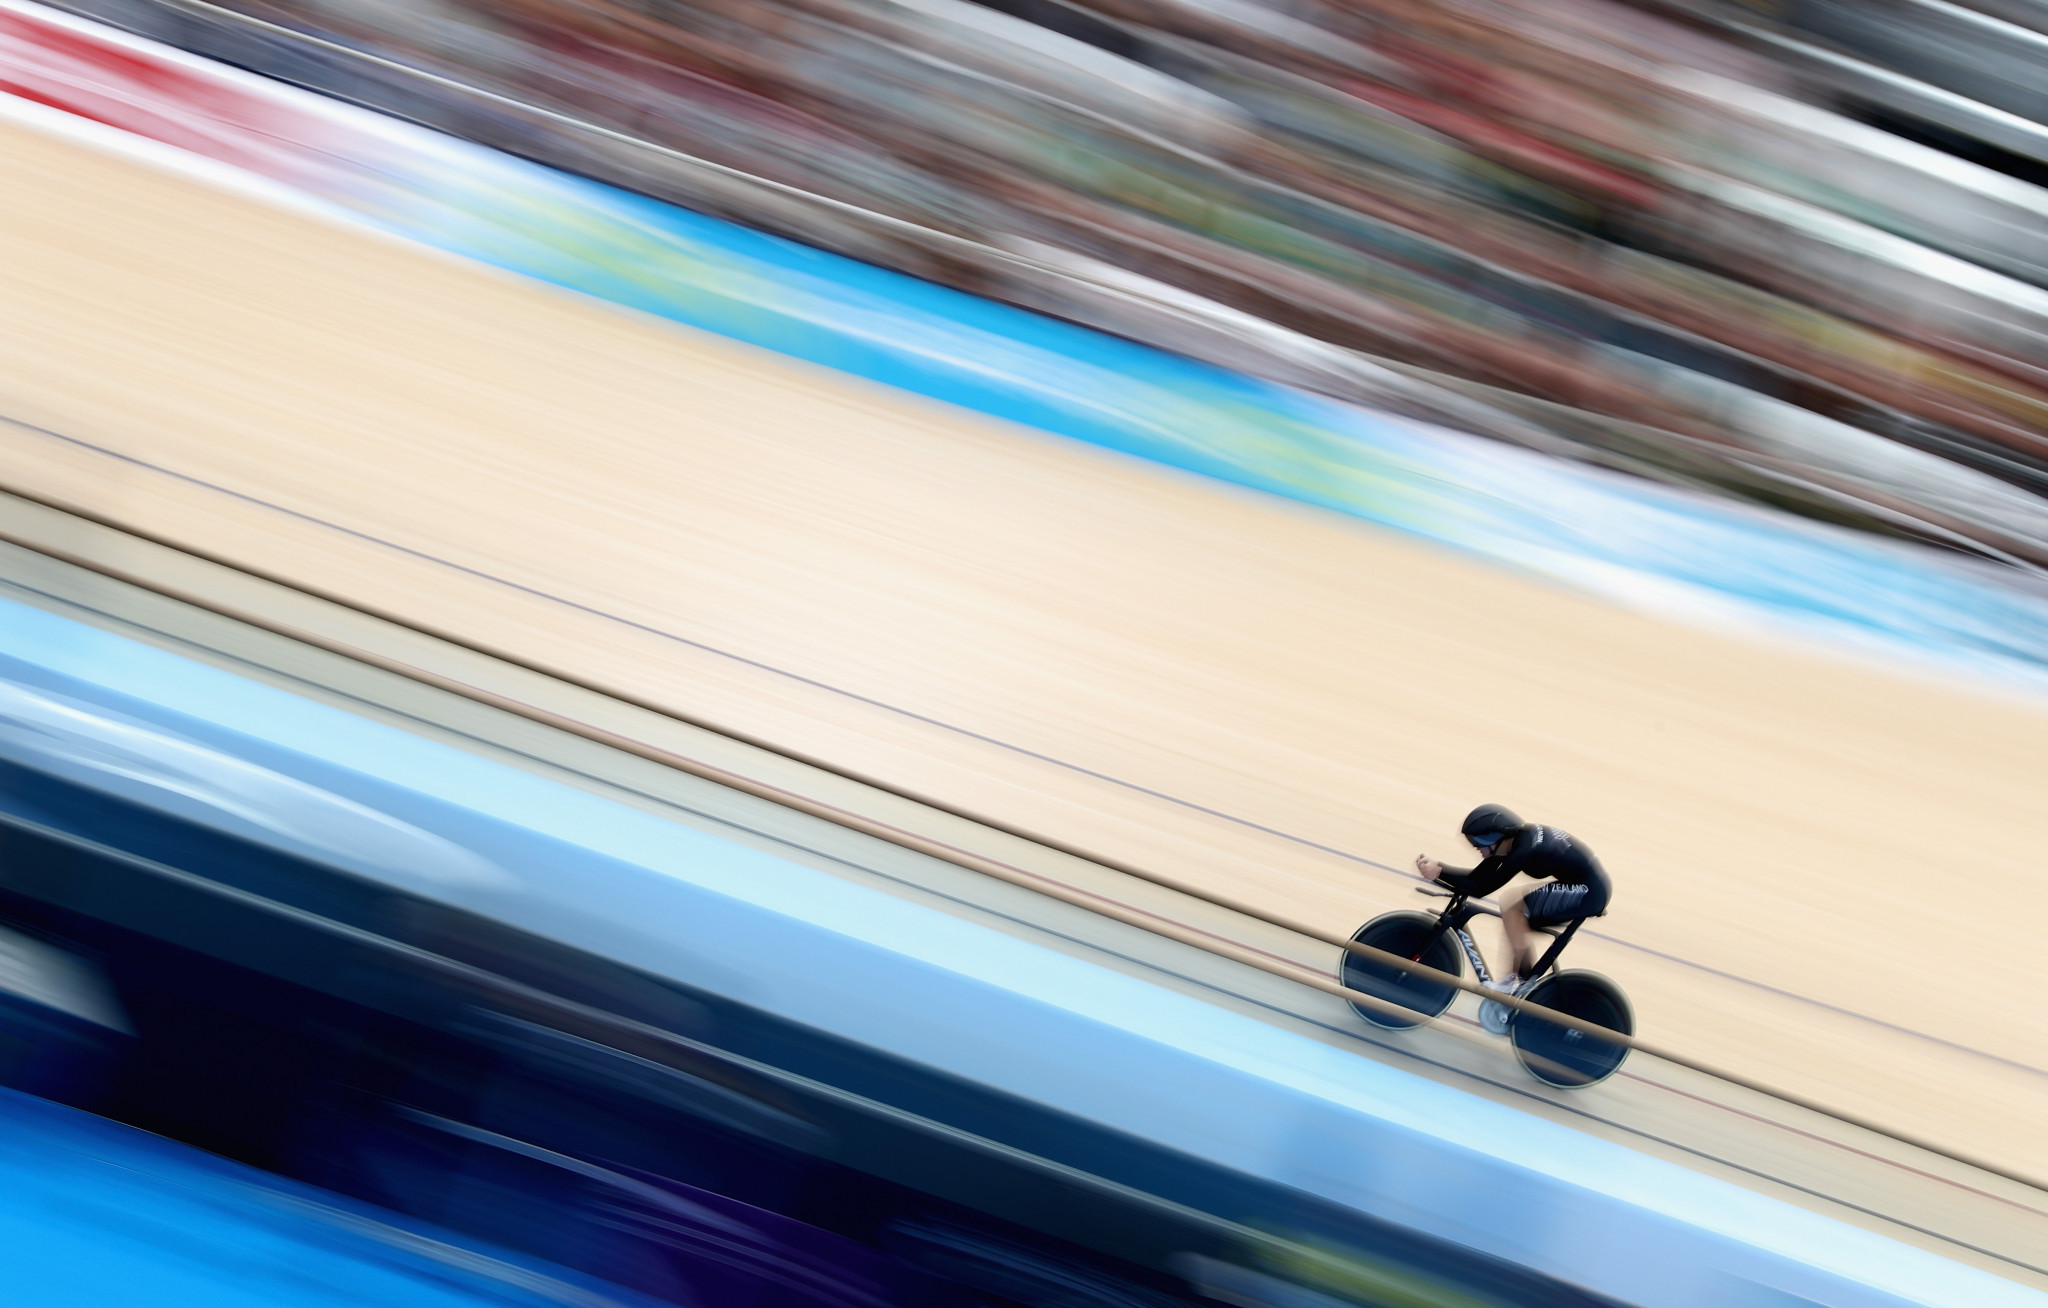 Ellesse Andrews took gold in the women's keirin ©Getty Images